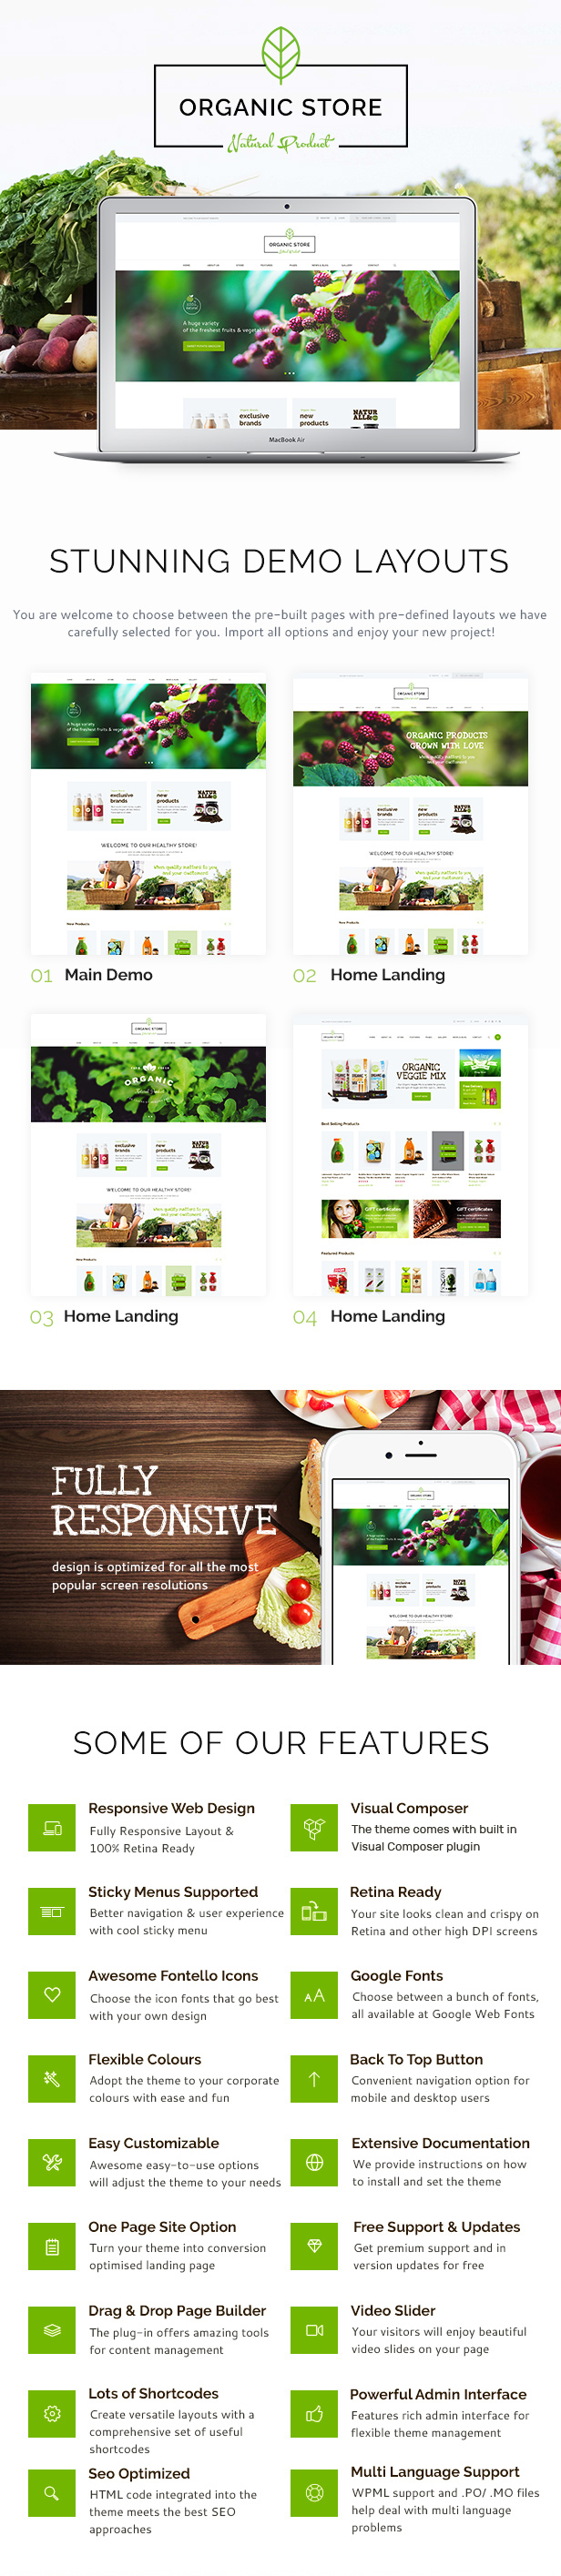 Organic Store Eco Products Shop Wordpress Theme Rtl By Axiomthemes